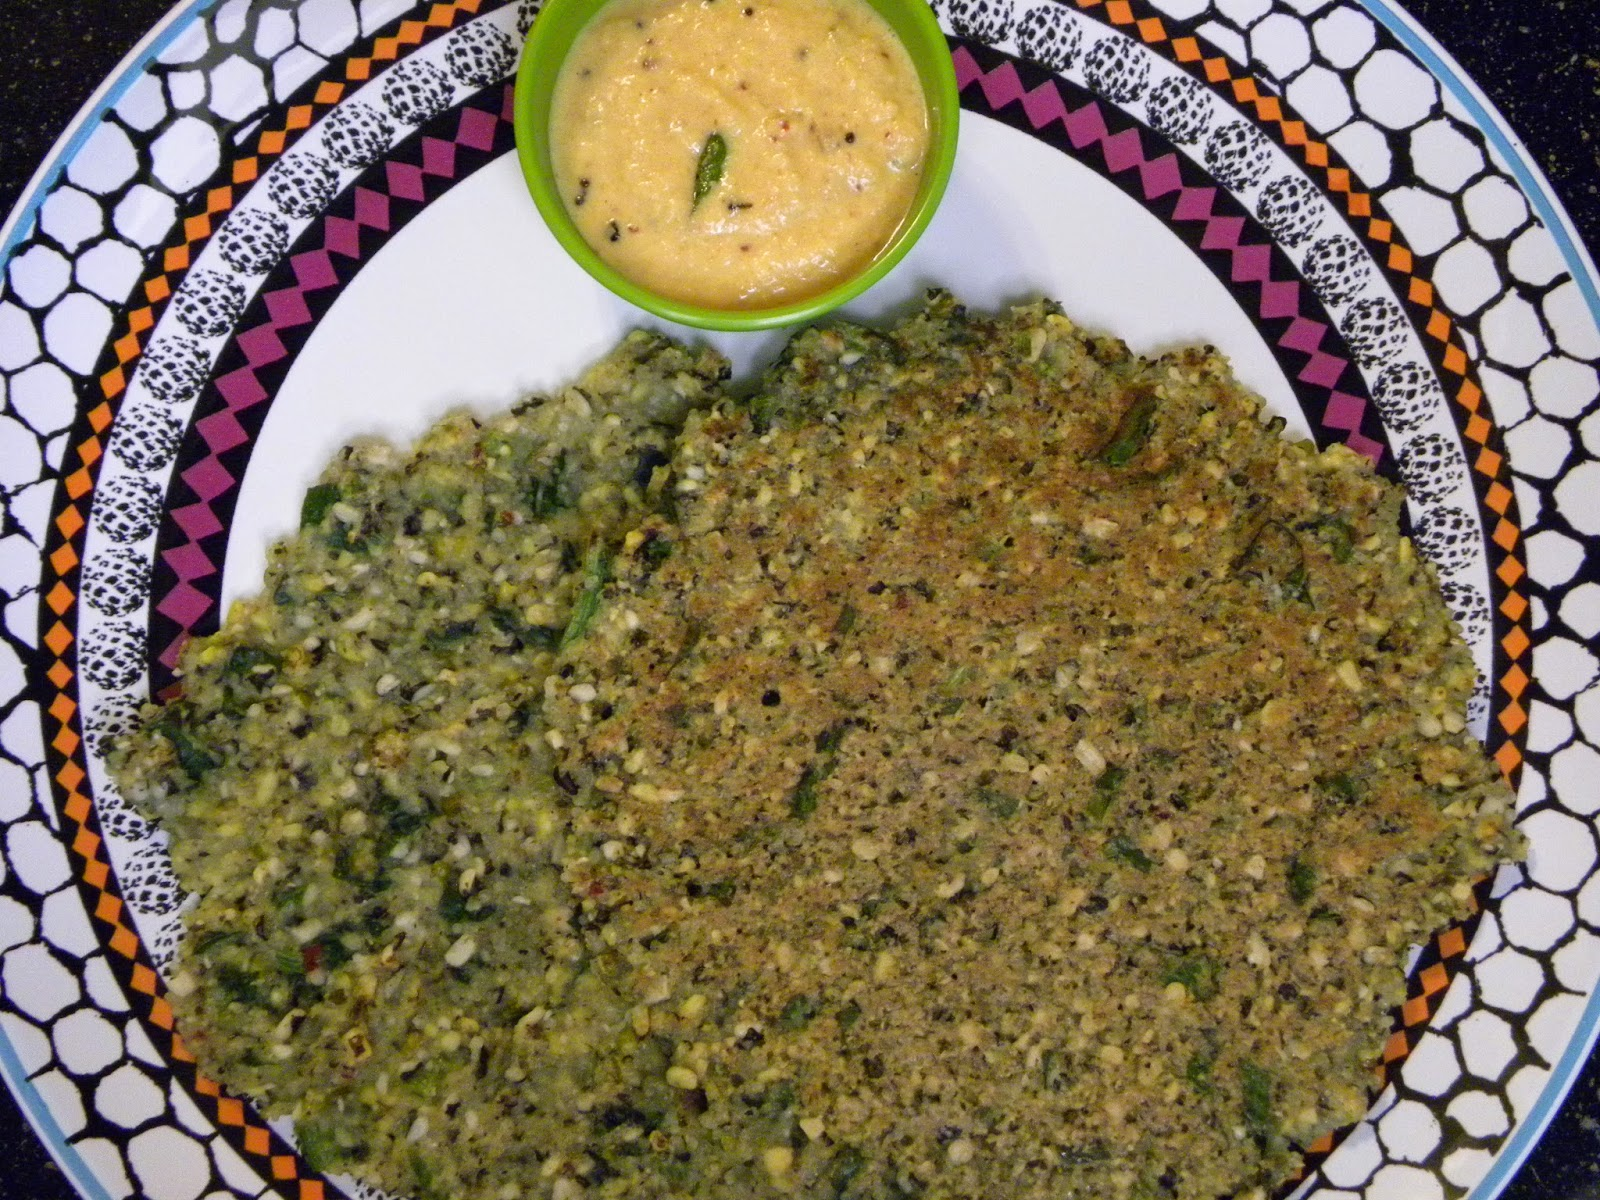 lentil and spinach crepes for breakfast or a quick snakc anytime